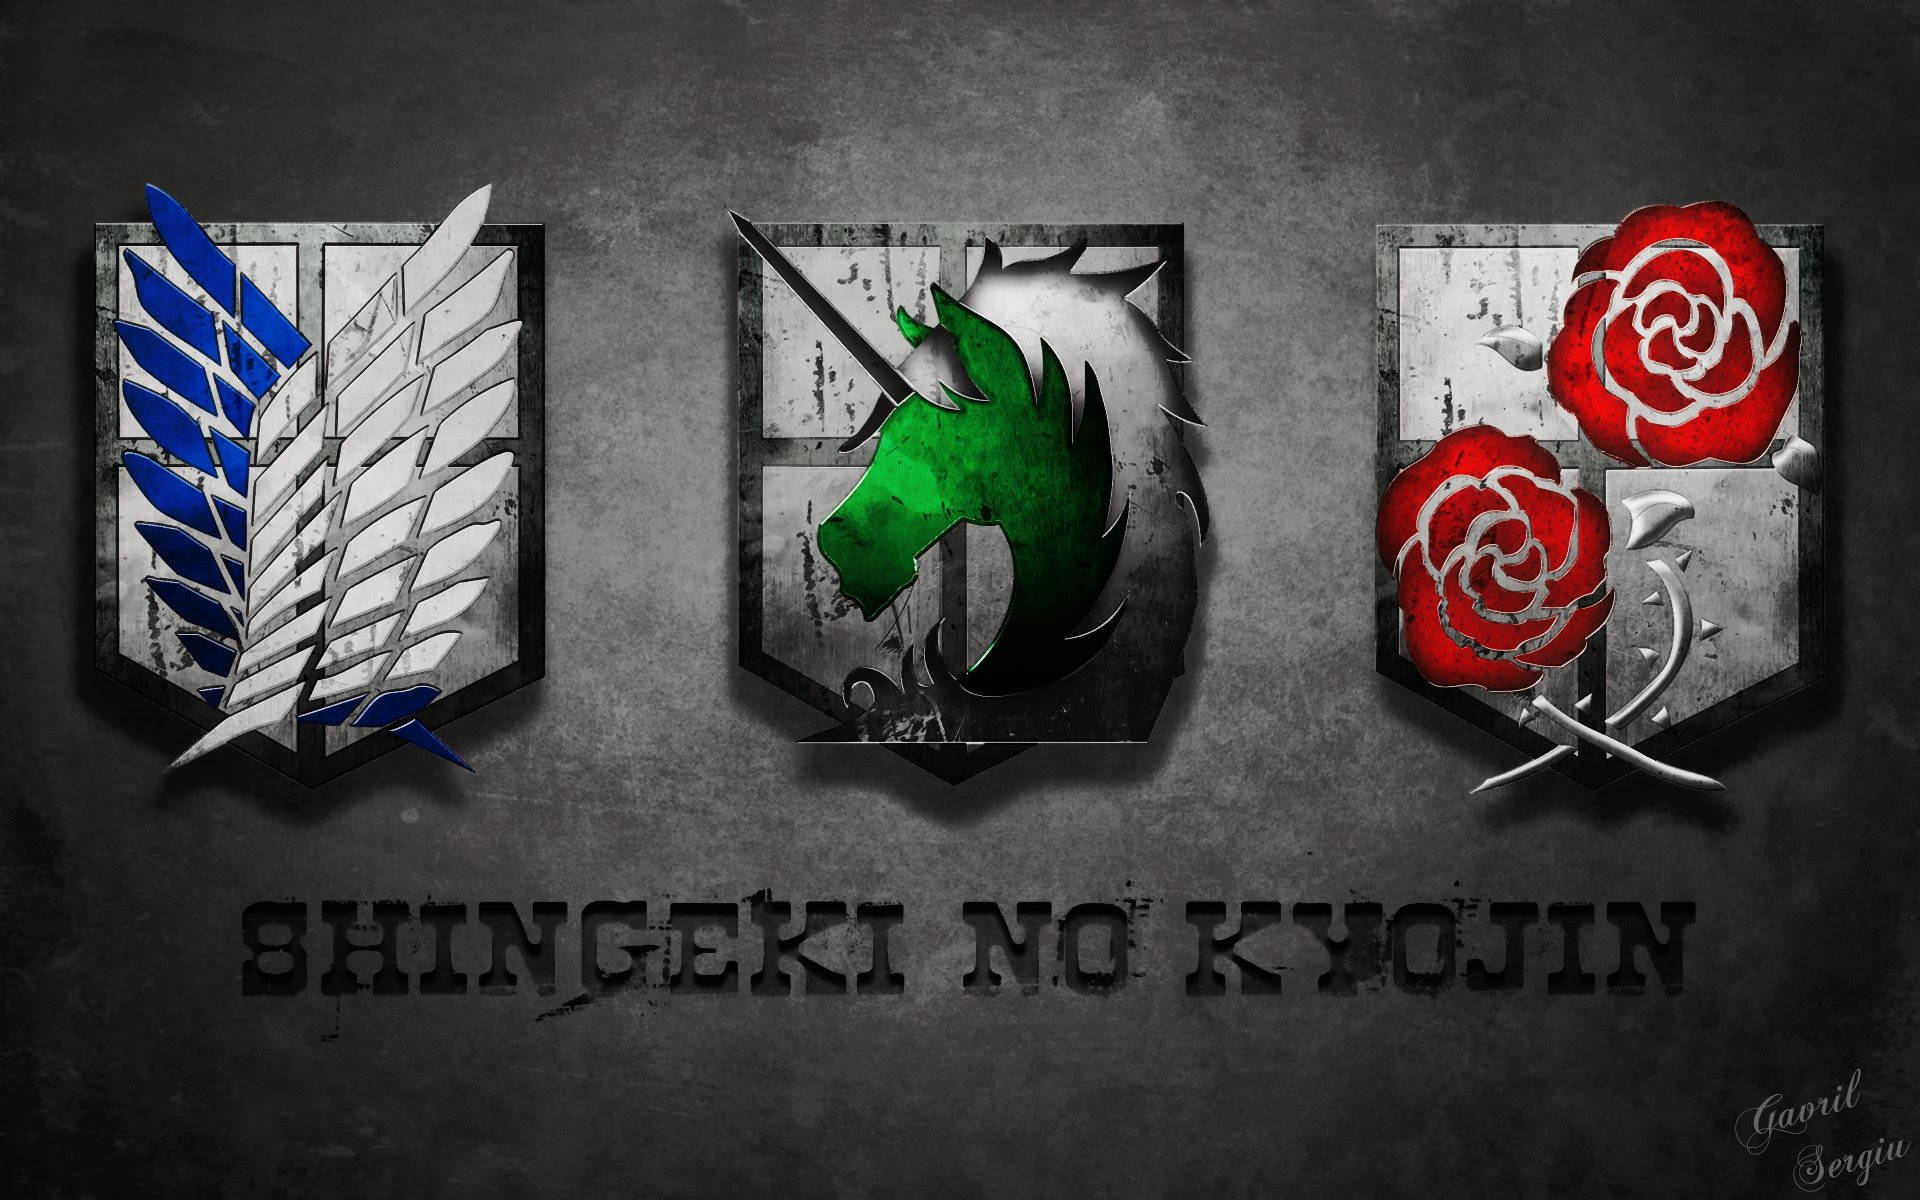 emblem flag logo shingeki no kyojin anime hd wallpaper 1920x1200 57 1920x1200